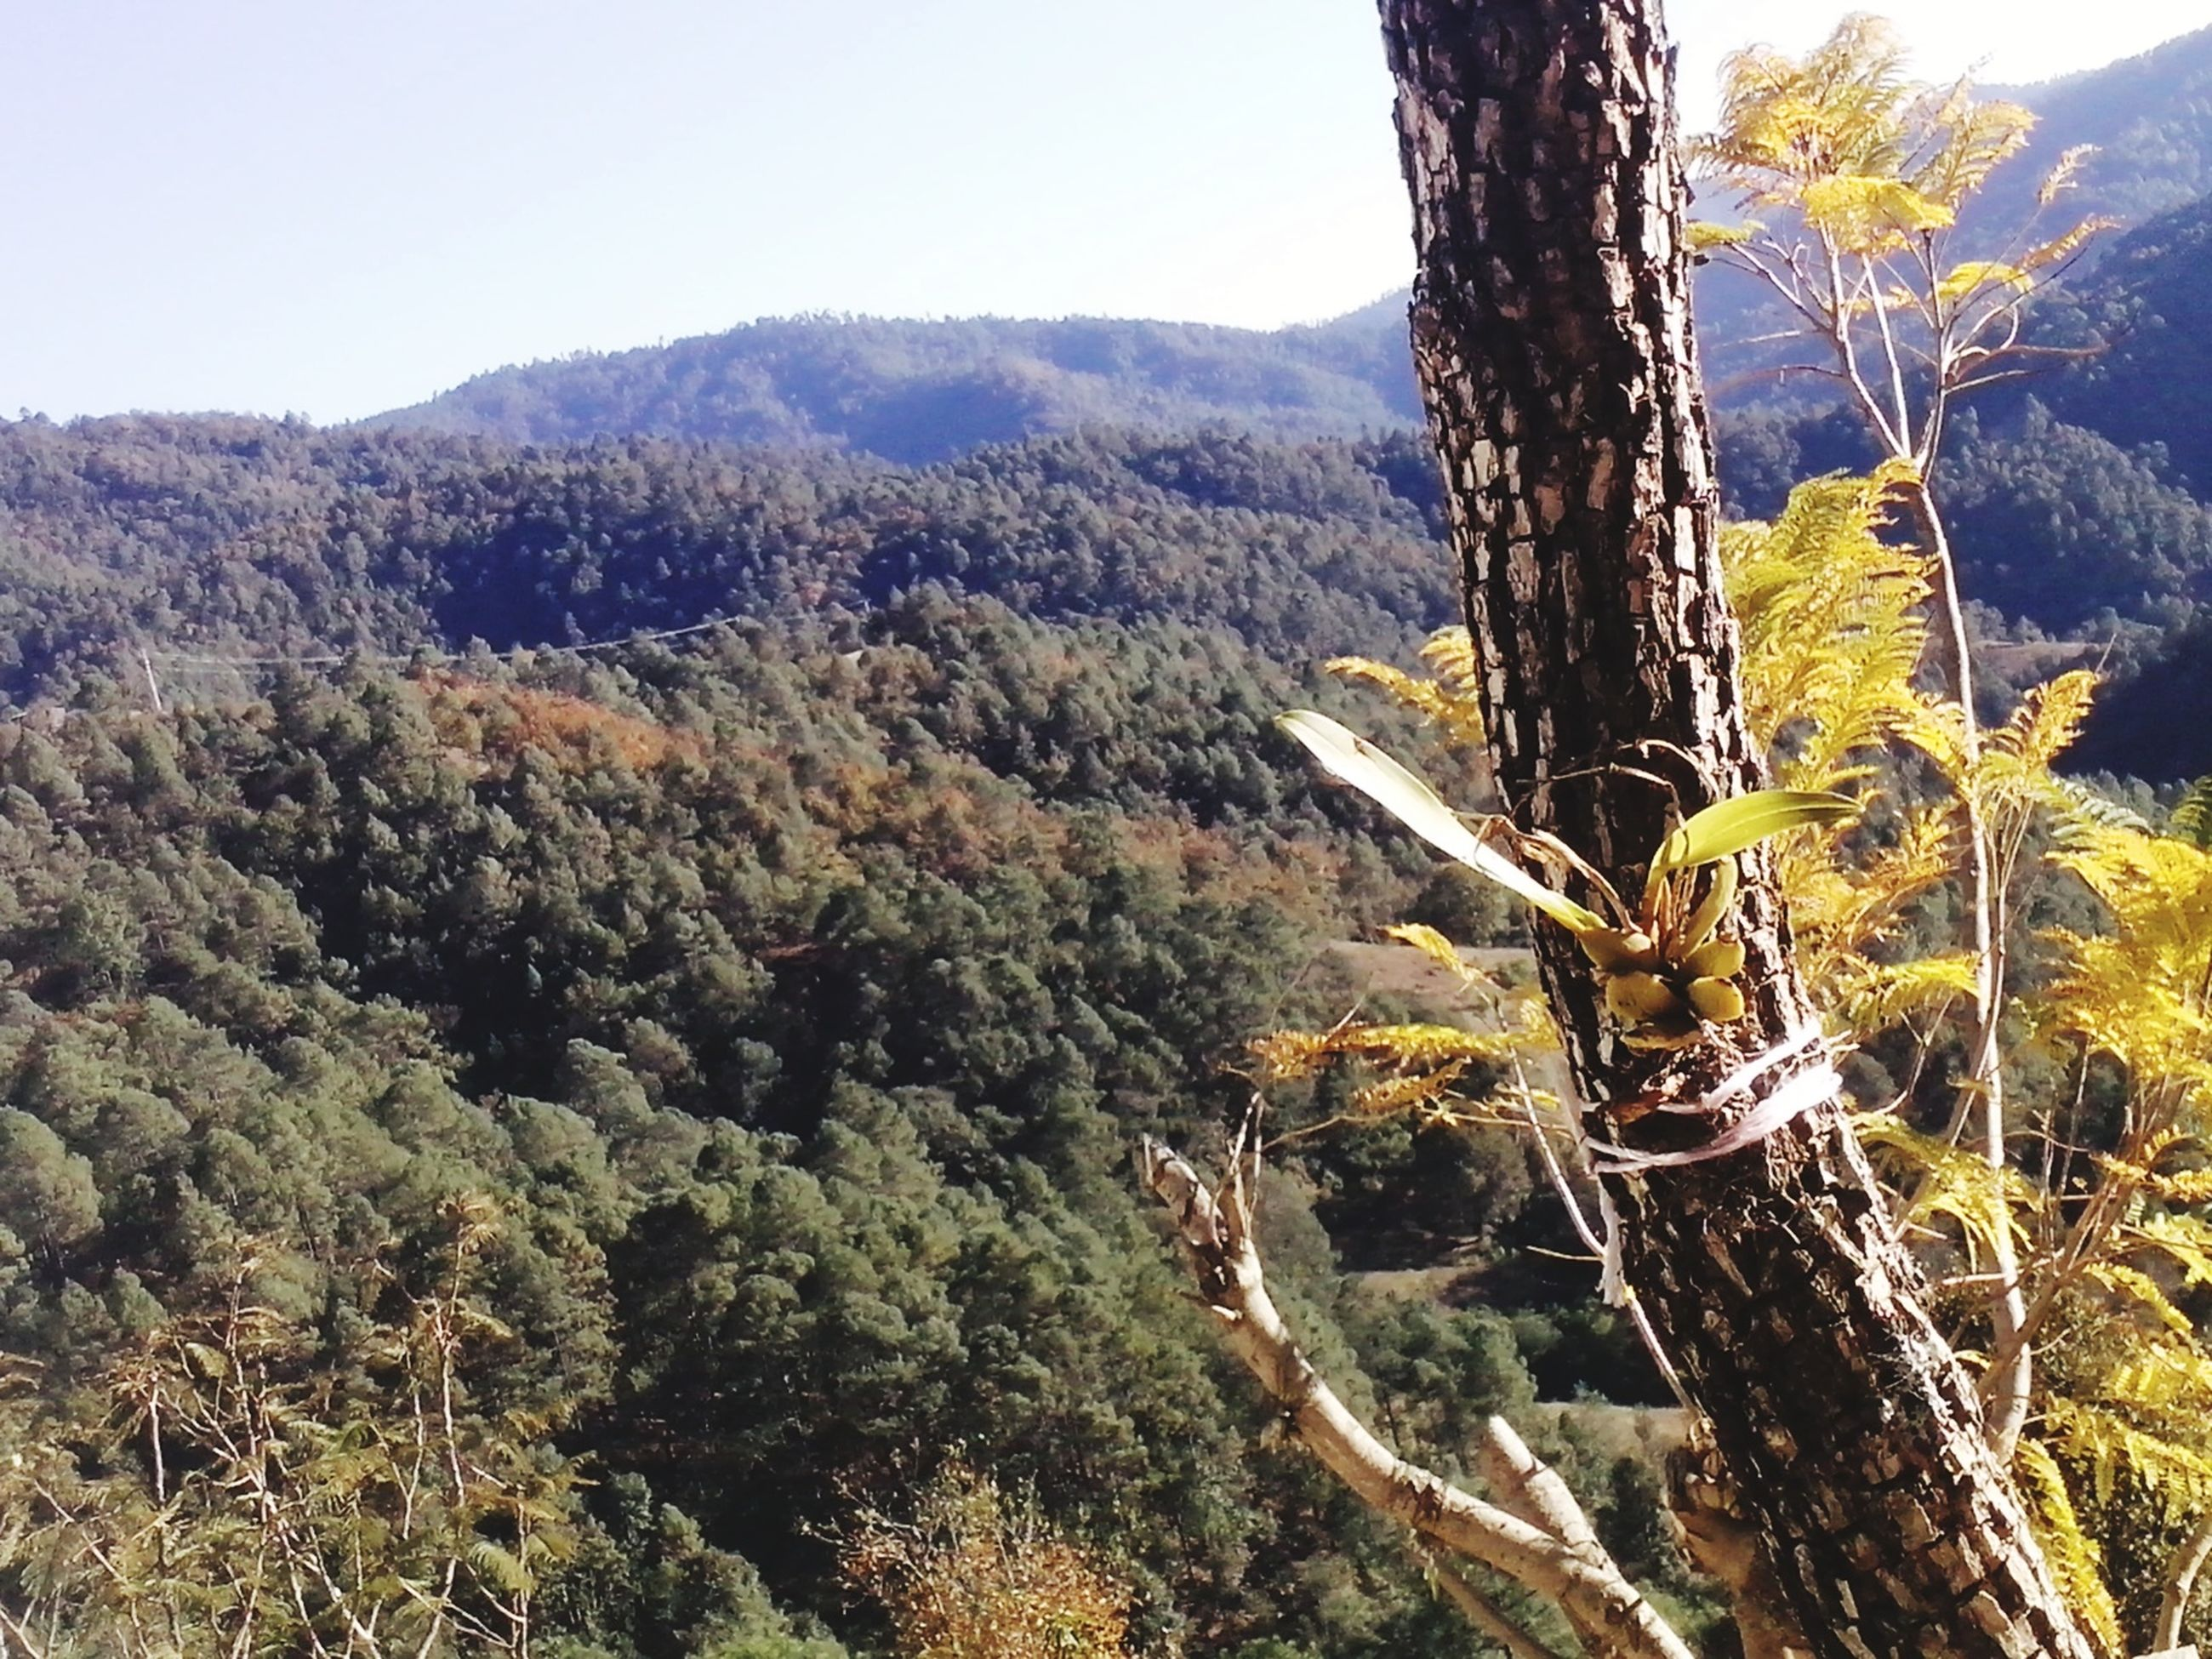 mountain, tree, tranquility, tranquil scene, scenics, beauty in nature, nature, growth, landscape, mountain range, forest, non-urban scene, clear sky, idyllic, green color, tree trunk, lush foliage, day, sky, remote